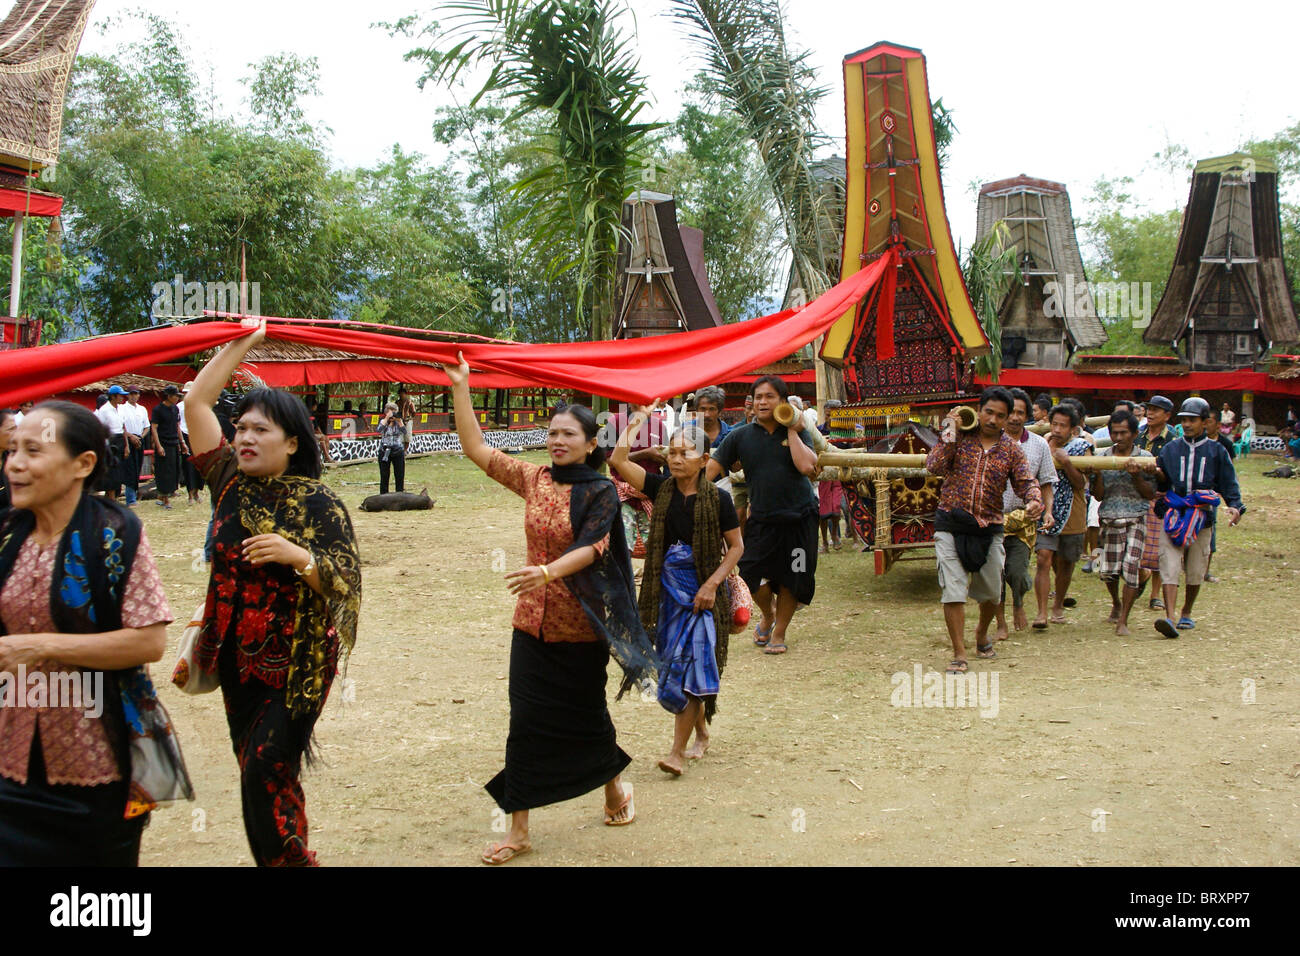 Indonesia Rituals Weddings And Funerals: Funeral Ceremony, Tana Toraja, South Sulawesi, Indonesia